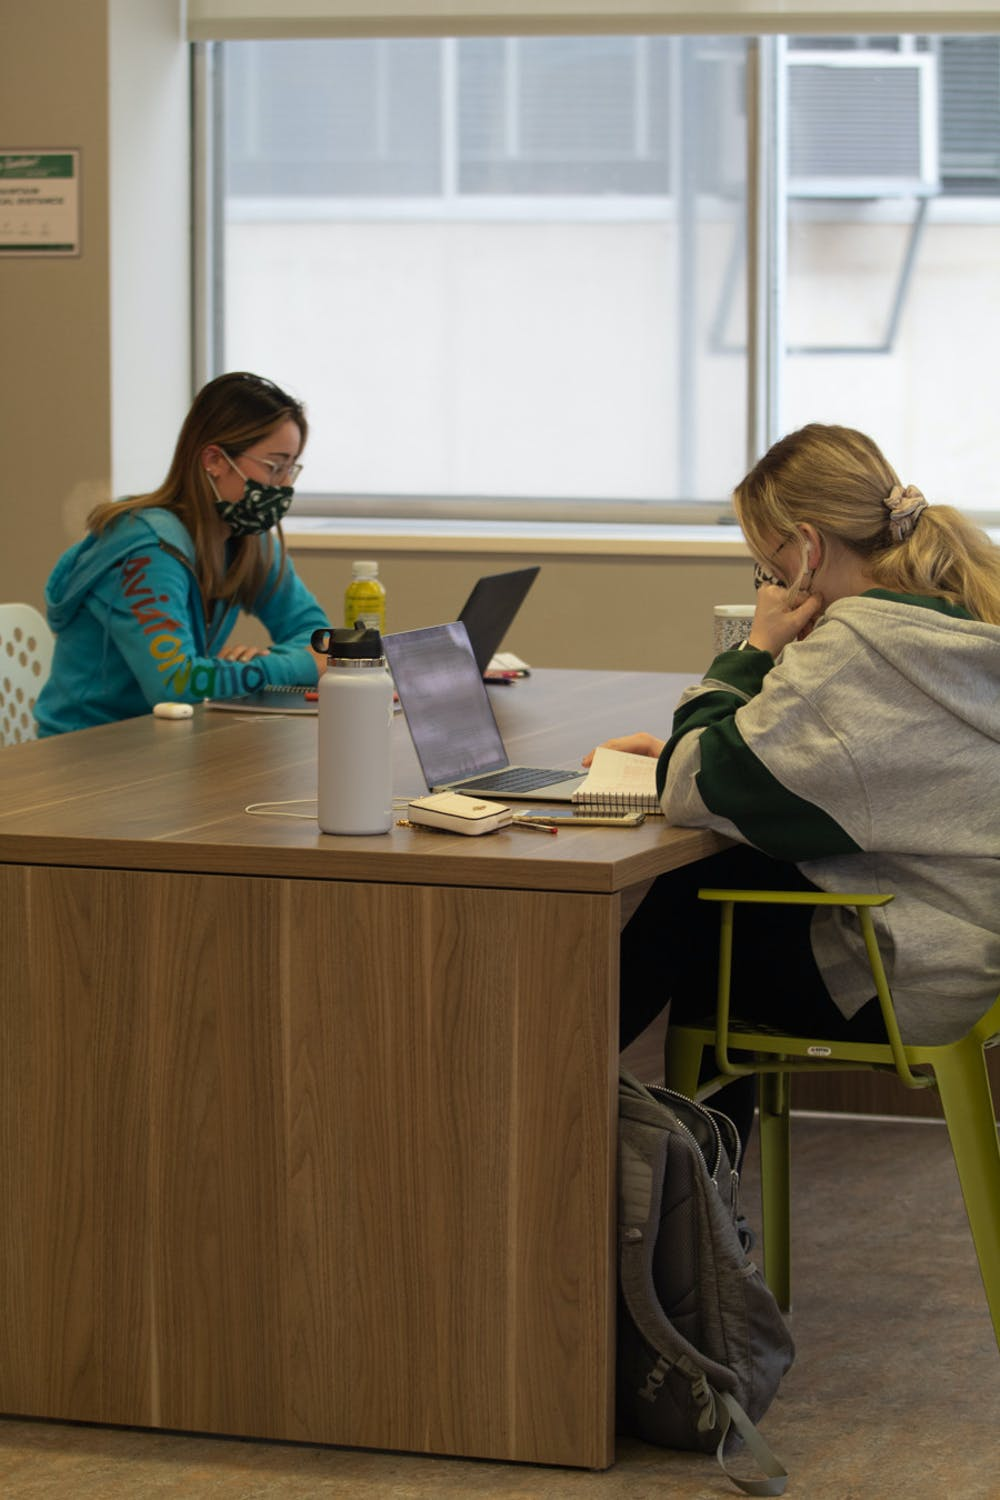 <p>Bella Demay (left) and Jenna Rizzi (right) studying in a McDonel study lounge, Tuesday, Jan. 19.</p>